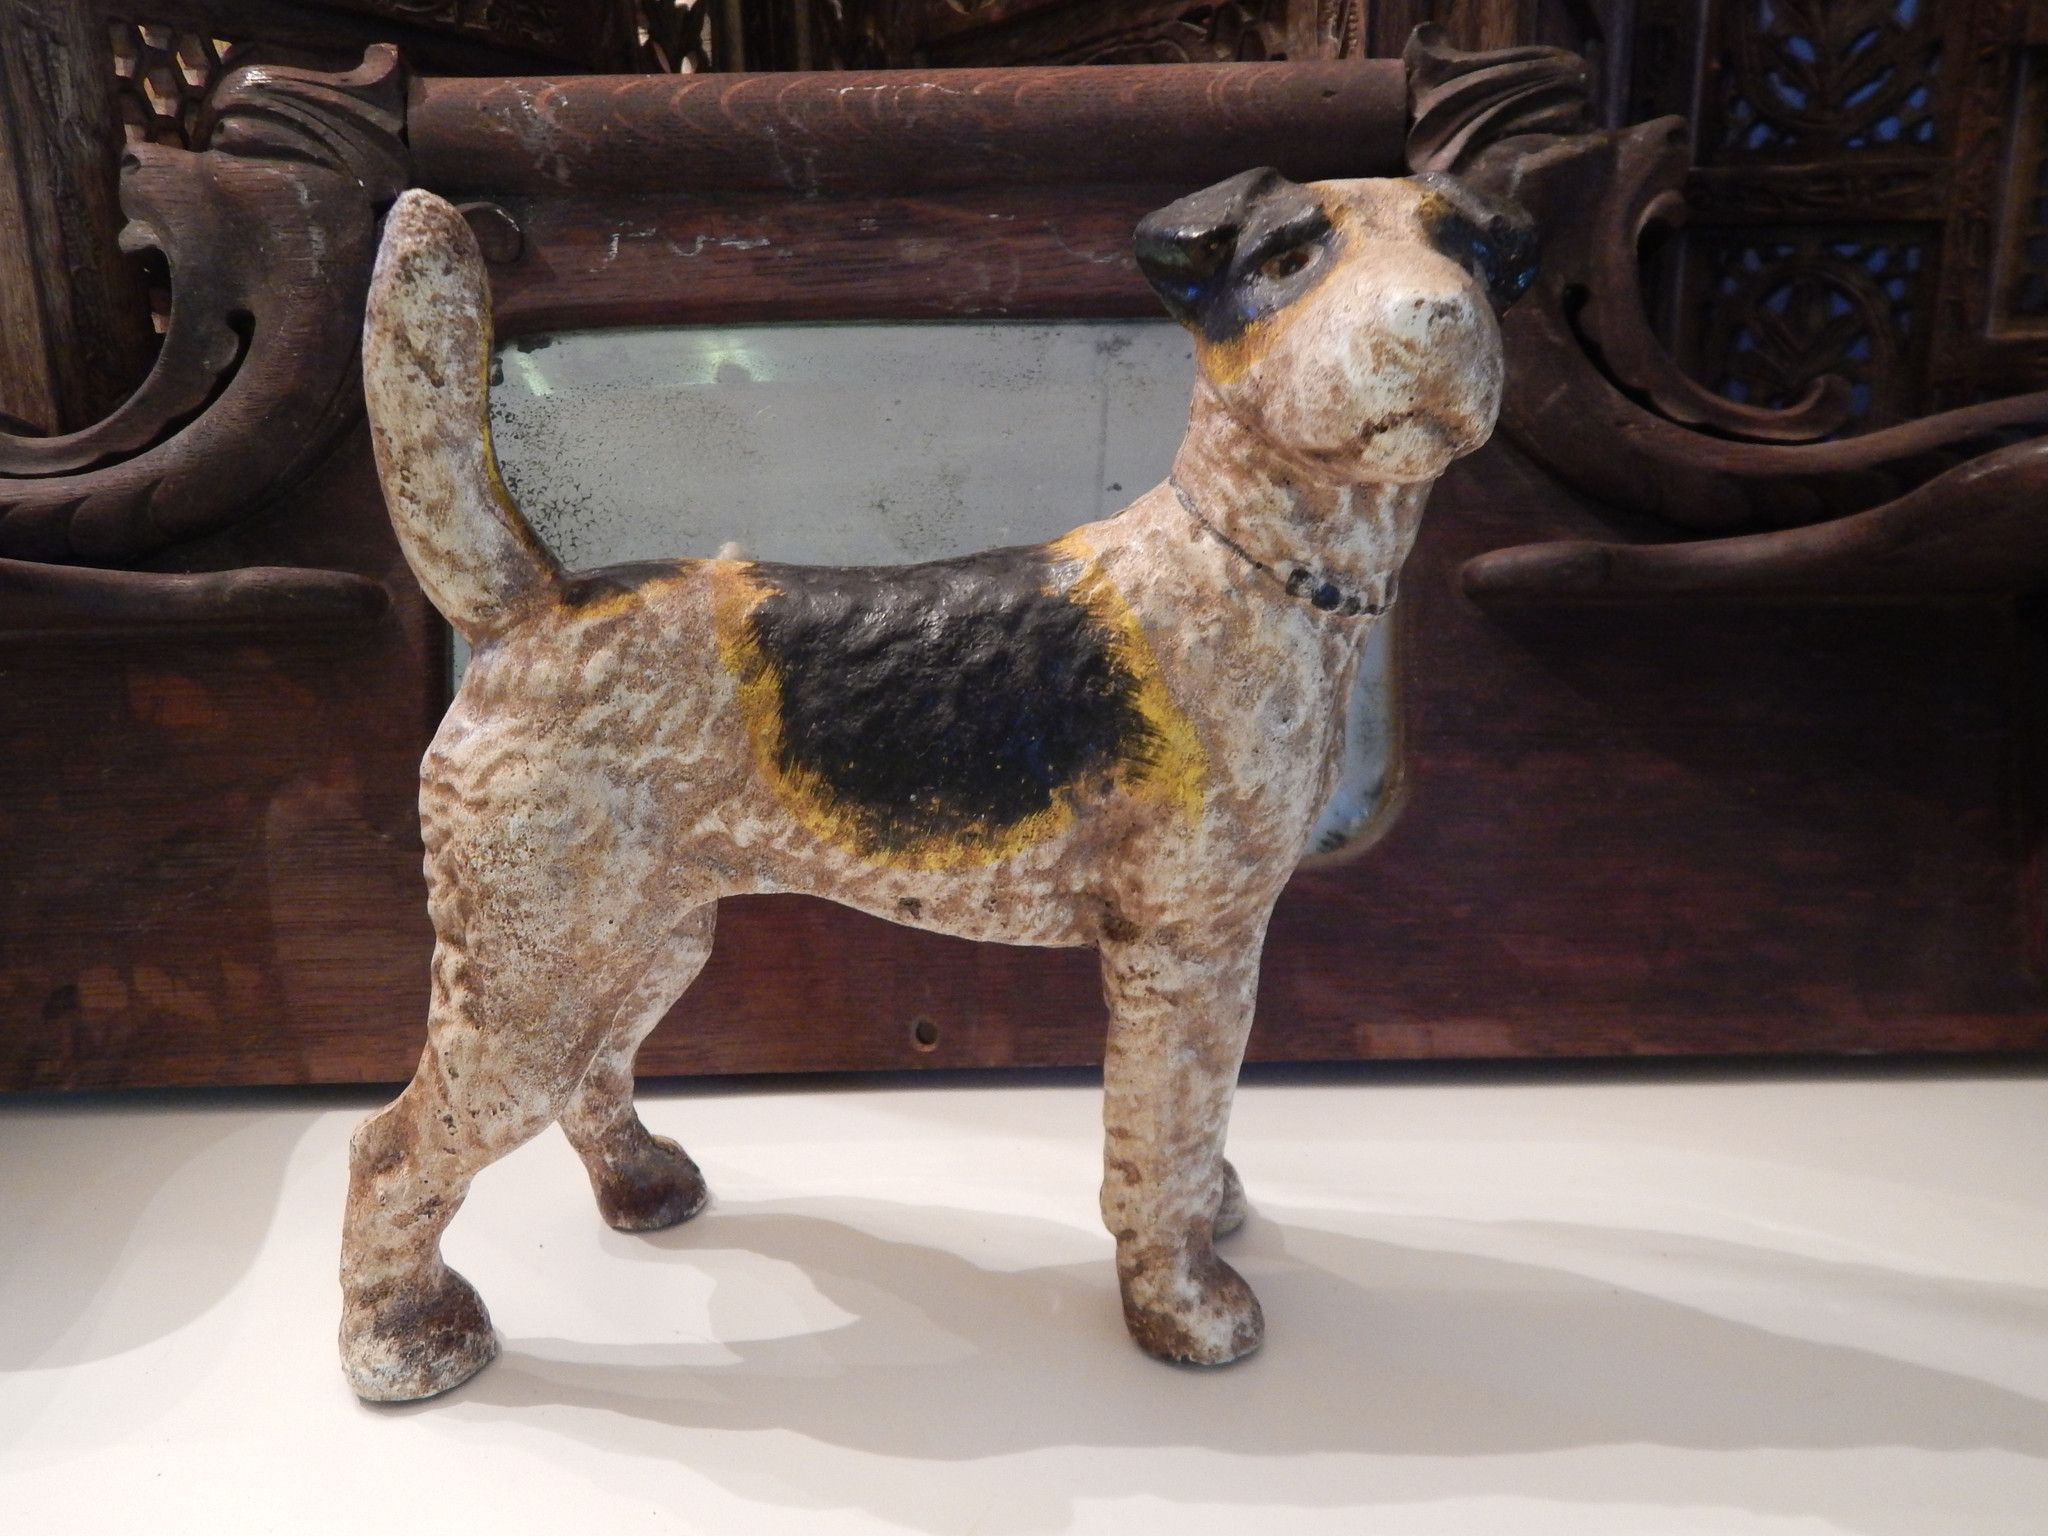 Vintage original hubley fox terrier 381 full figured large art statue - Antique Iron